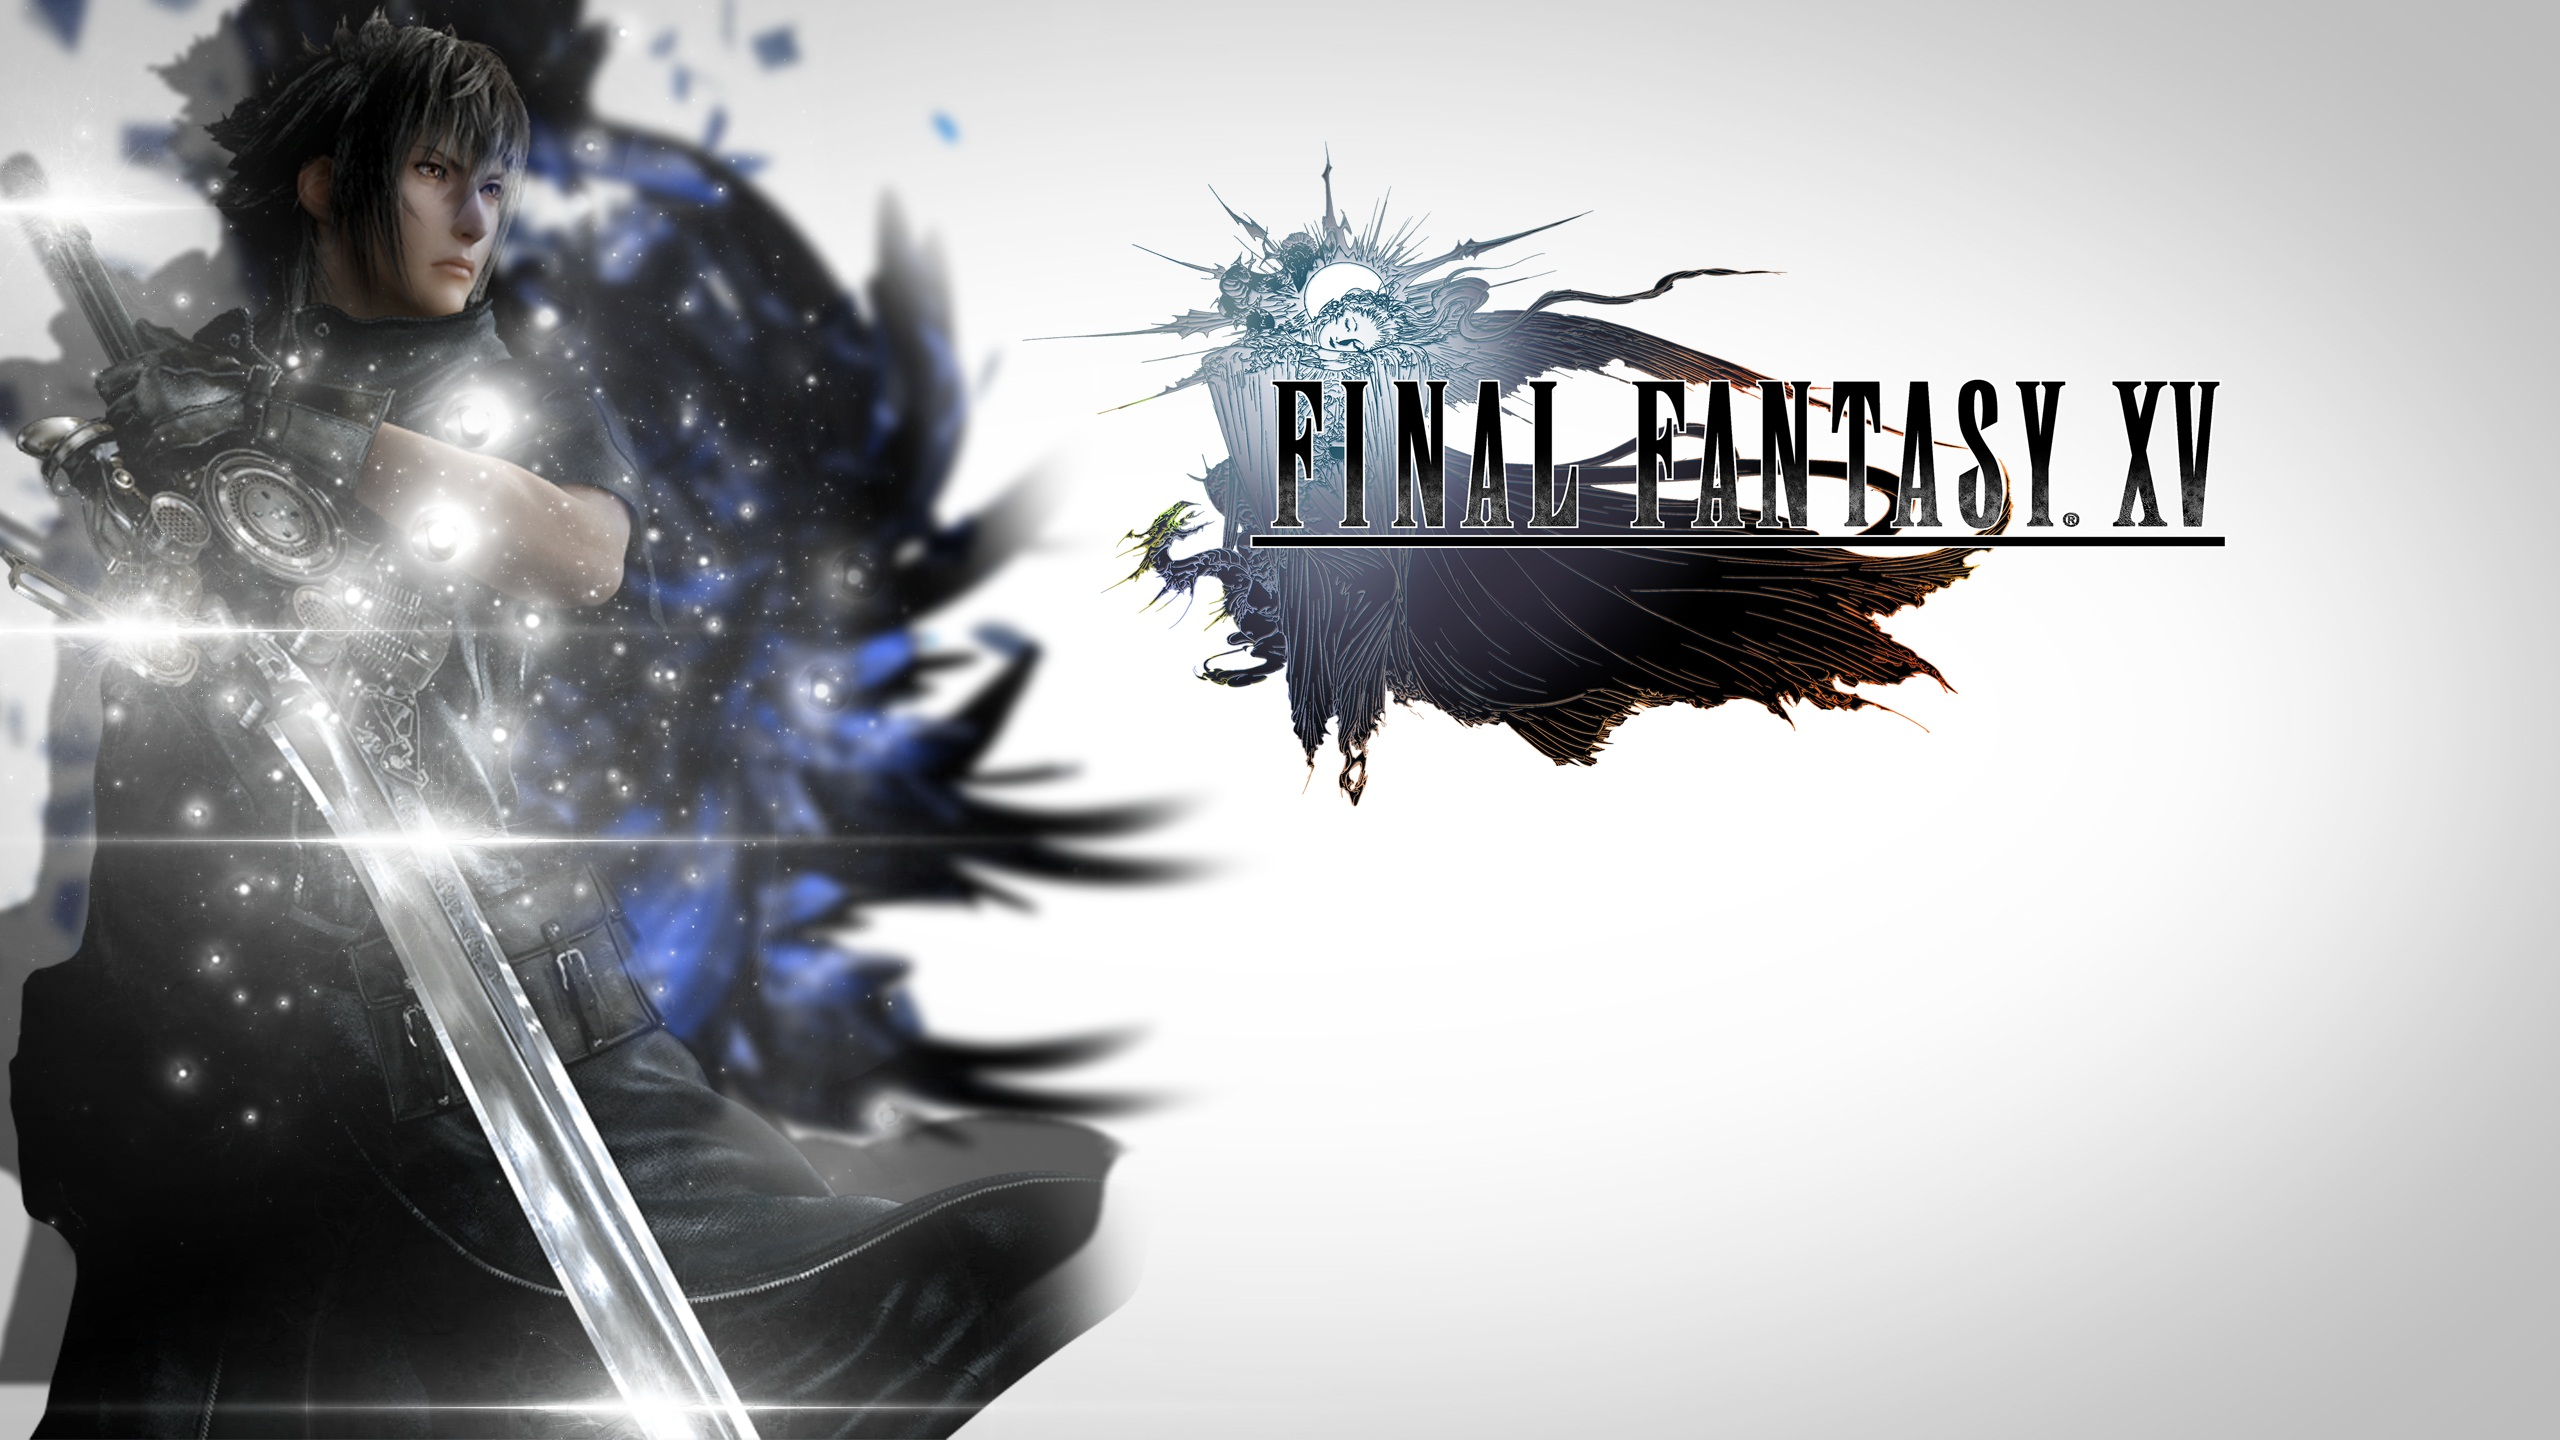 10 Best Final Fantasy XV Wallpapers HD   InspirationSeekcom 2560x1440